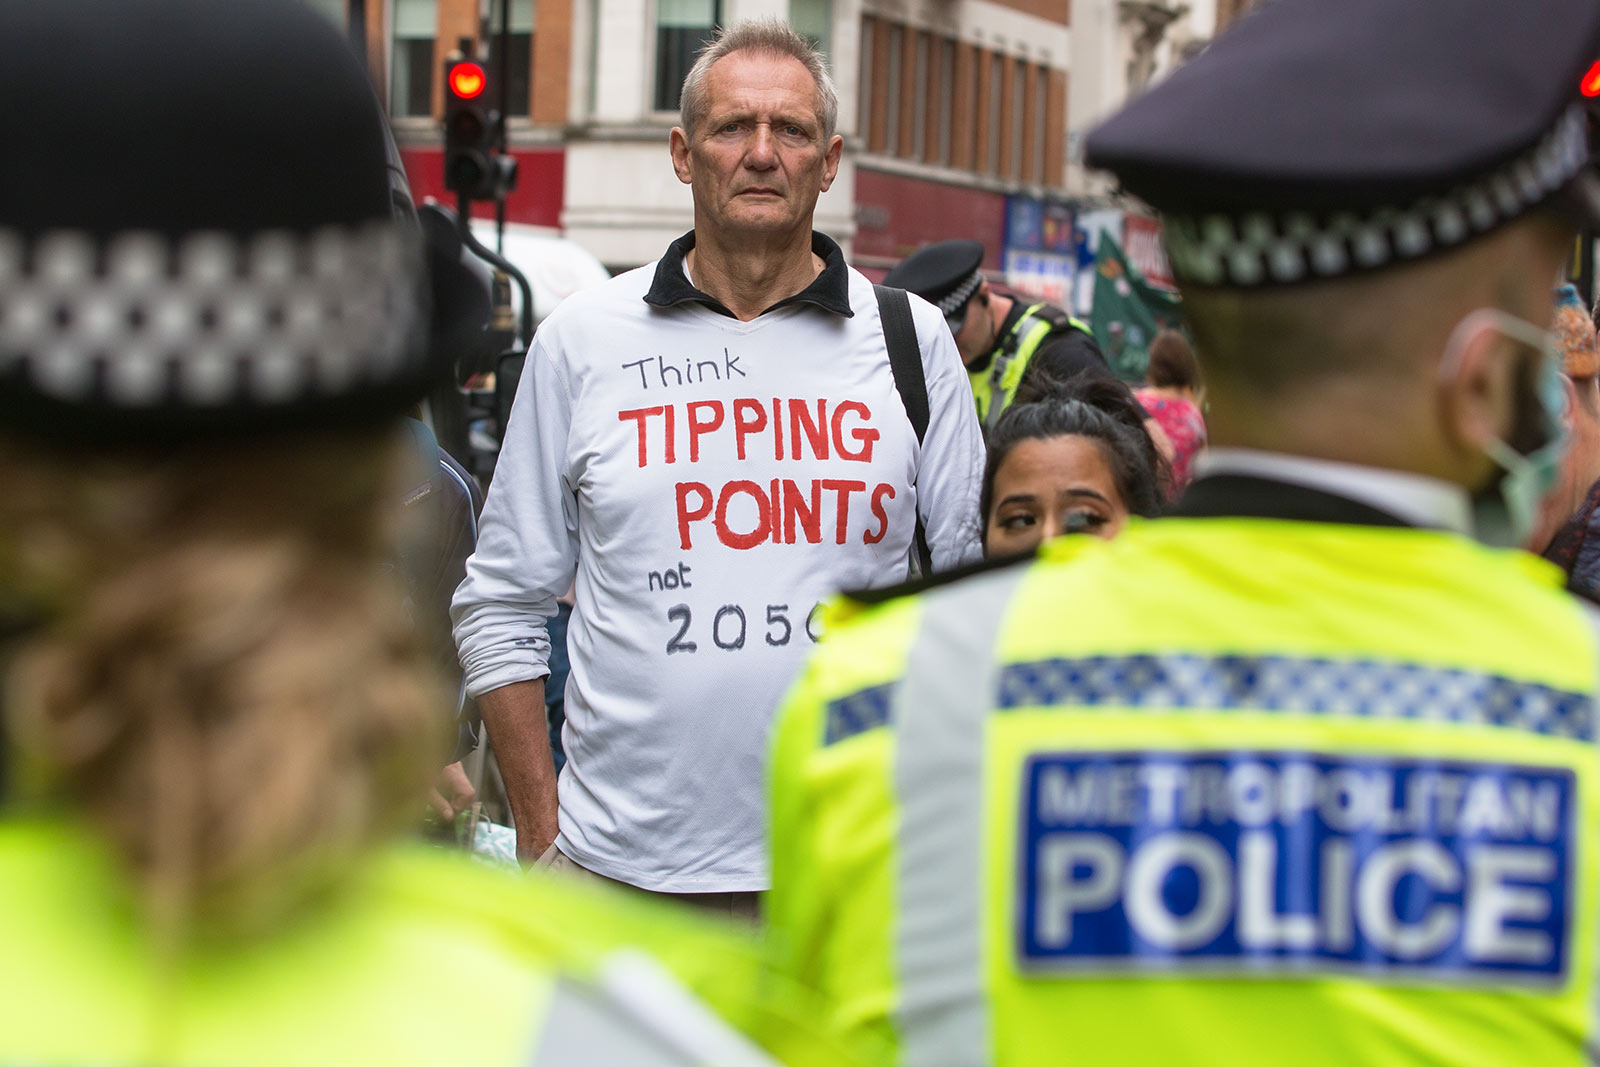 An environmental activist from Extinction Rebellion wears a t-shirt referring to climate tipping points